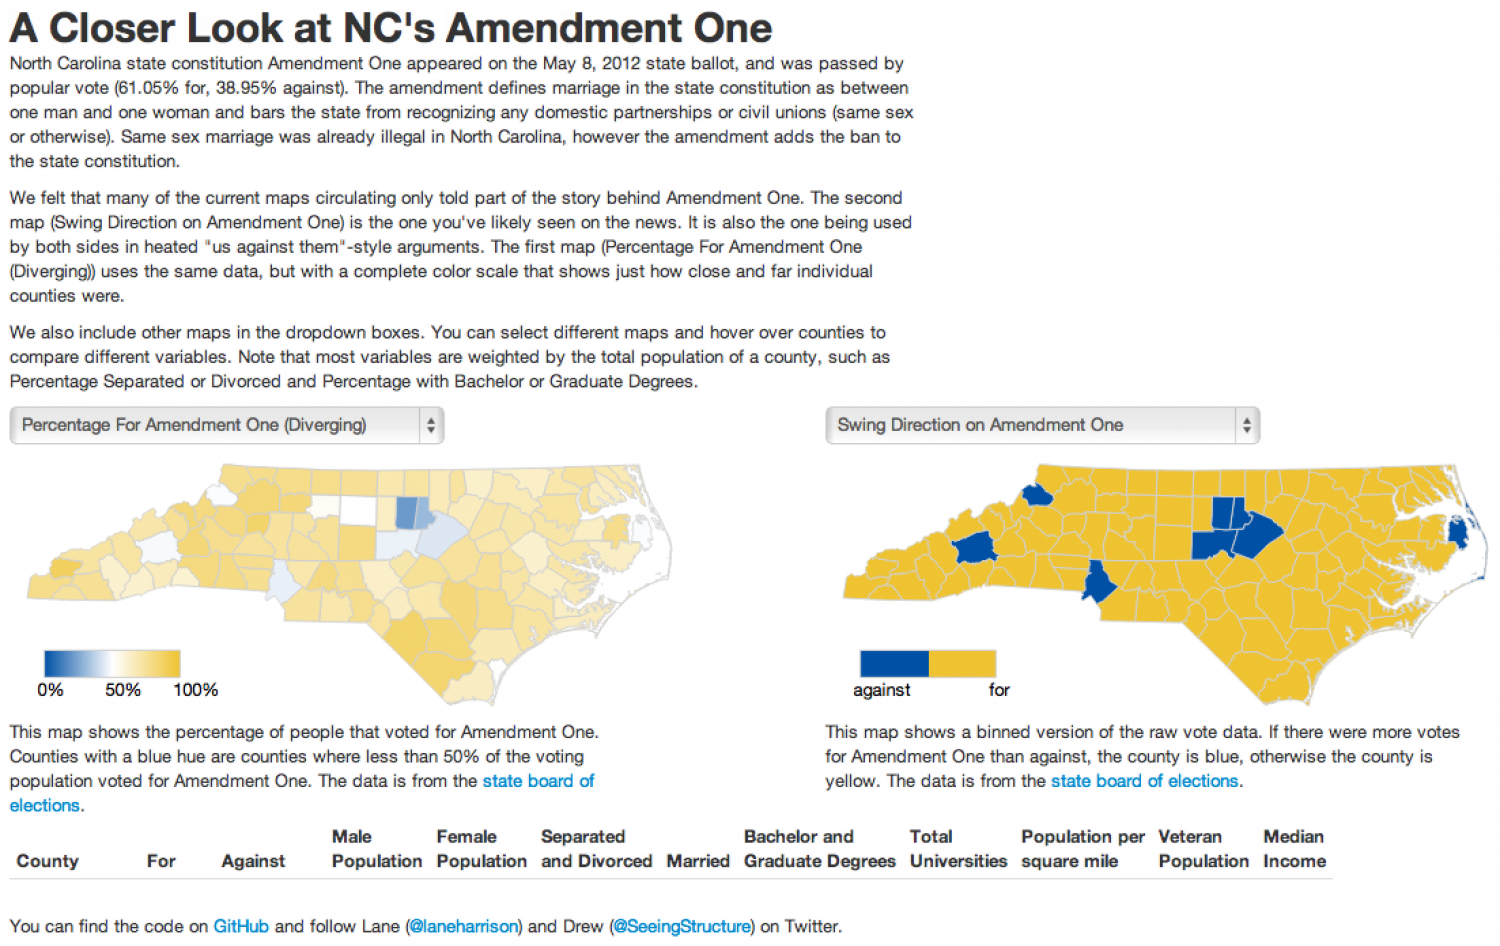 A Closer Look at North Carolina's Amendment One Infographic